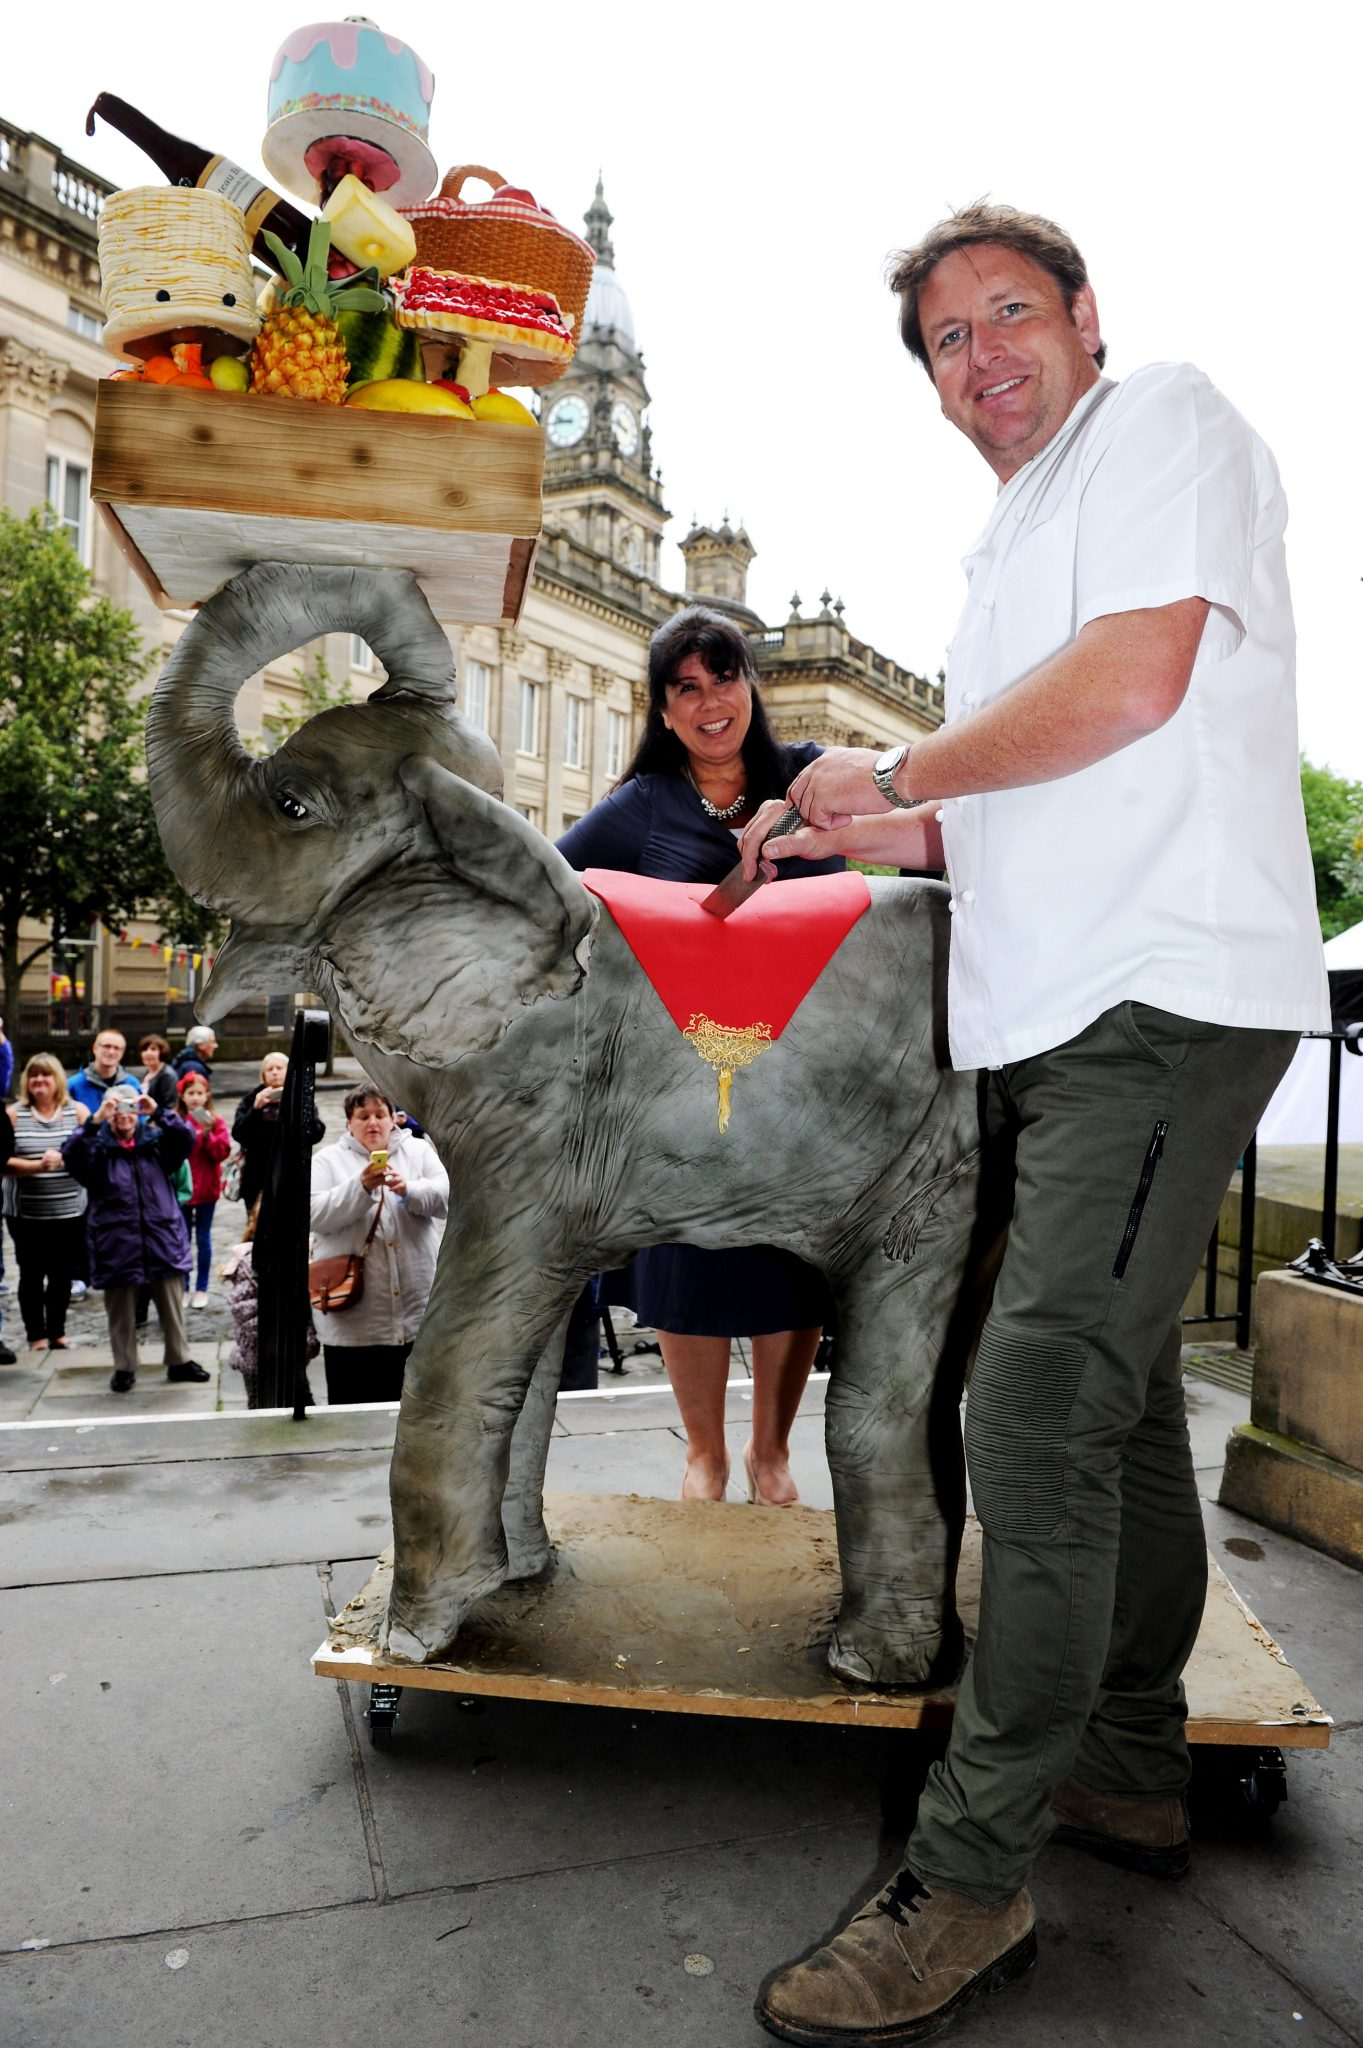 The 10th annual Bolton Food and Drink Festival, Victoria Square, Bolton, Lancashire. Celebrity chef James Martin cuts into the 10th anniversary cake with maker Rosie Dummer. Picture by Paul Heyes, Monday August 31, 2015.